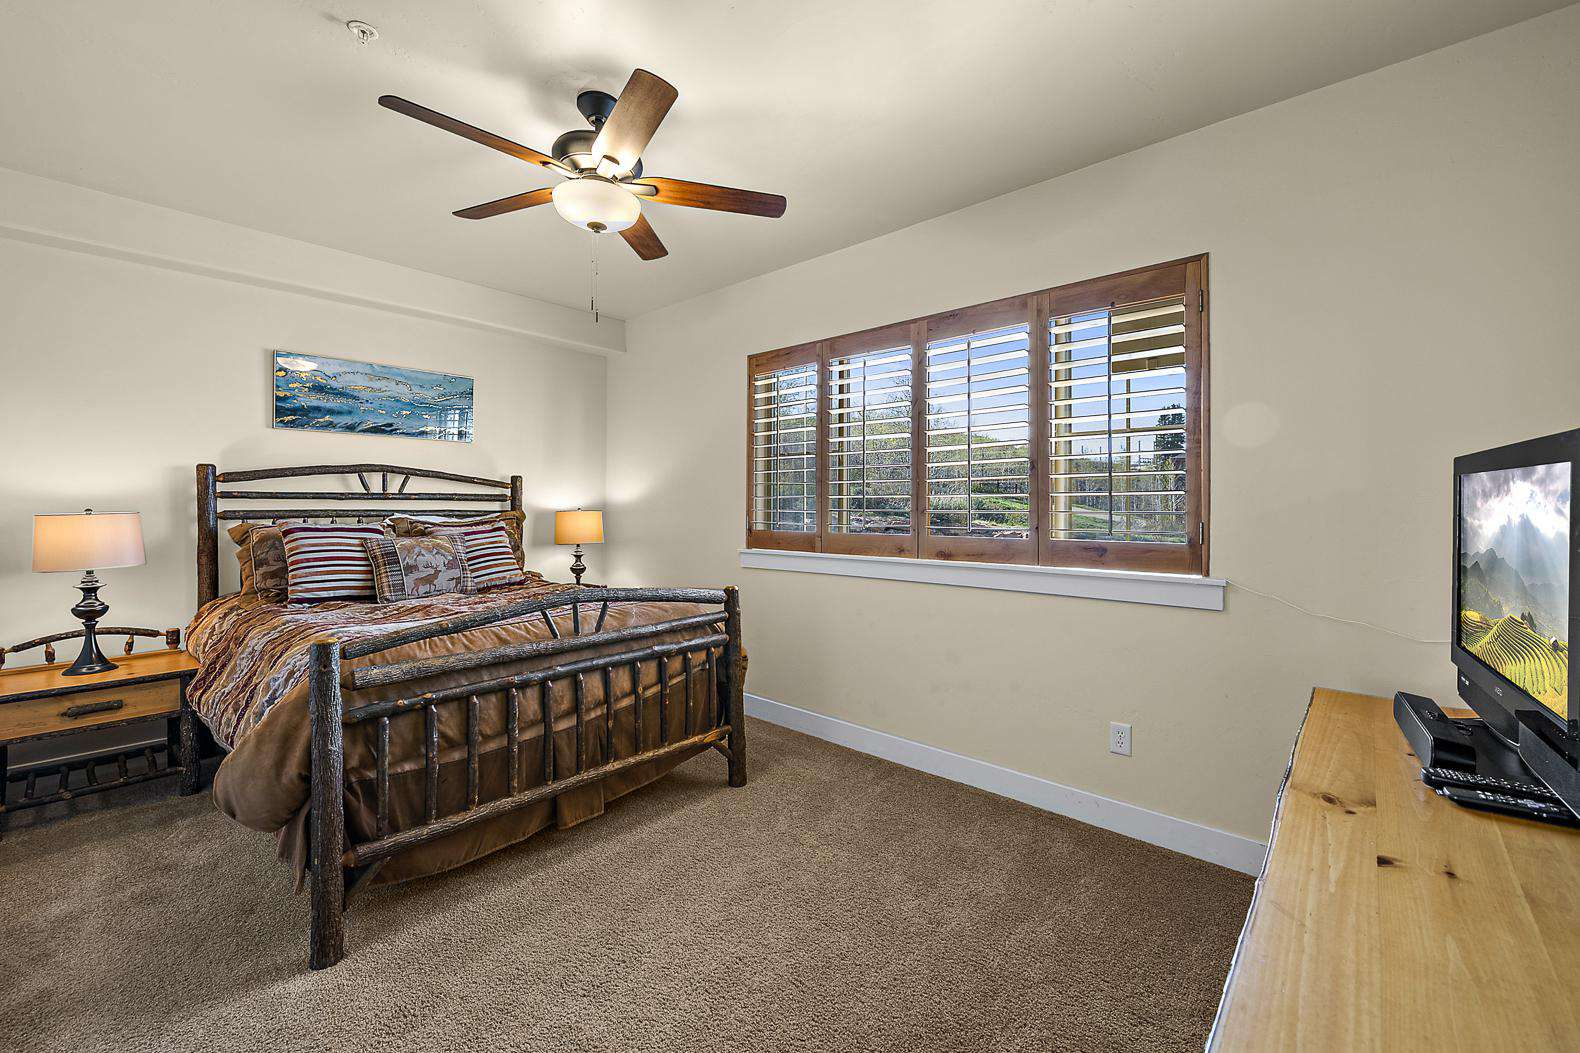 Master bedroom with window views